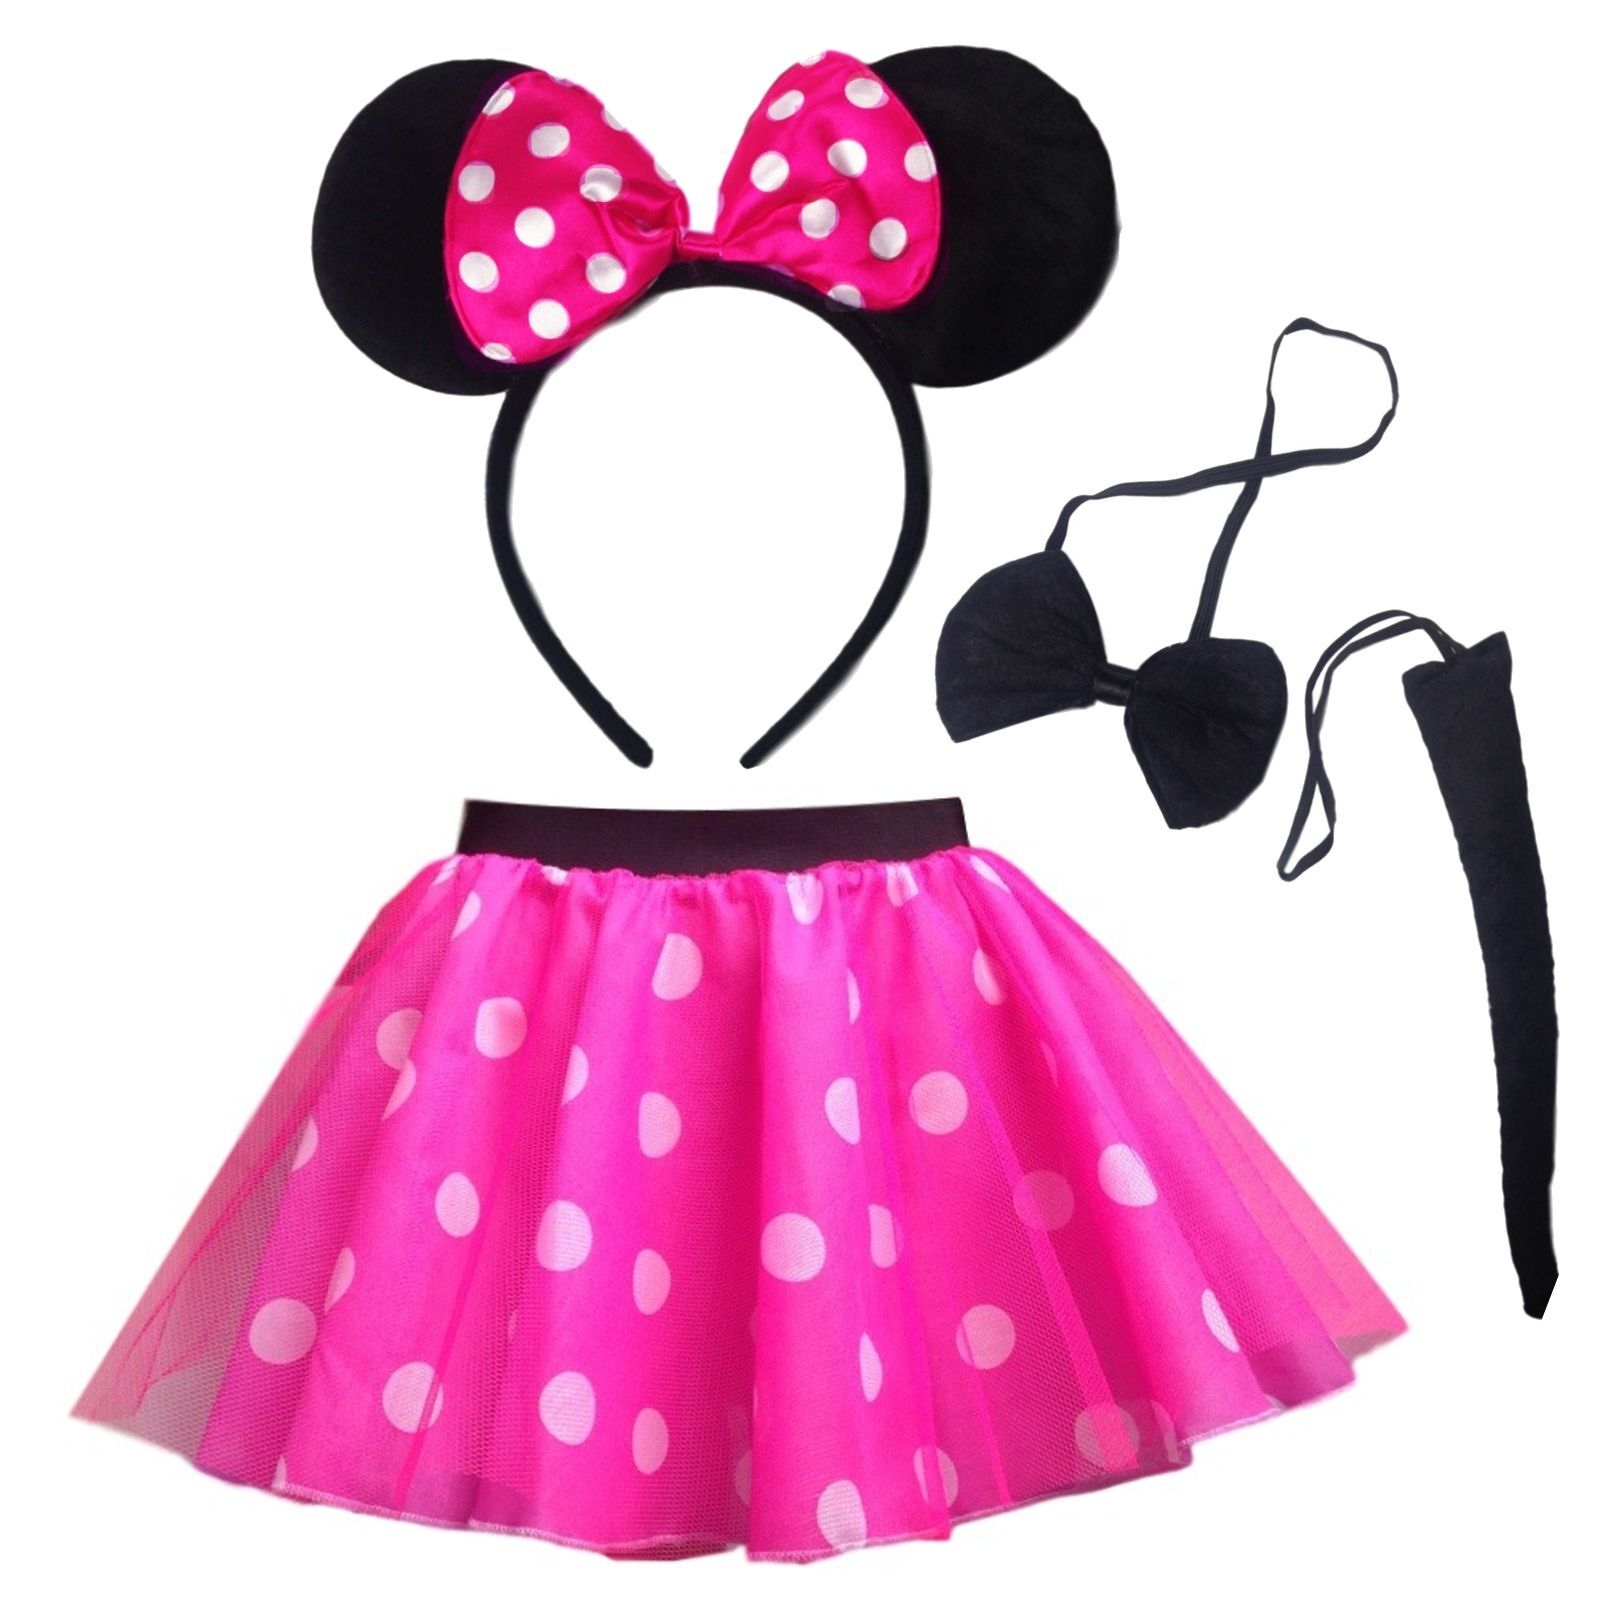 NEW Girls Pink MINNIE Mouse DANCE Costume Fancy Dress Accessory Set Ears Tail